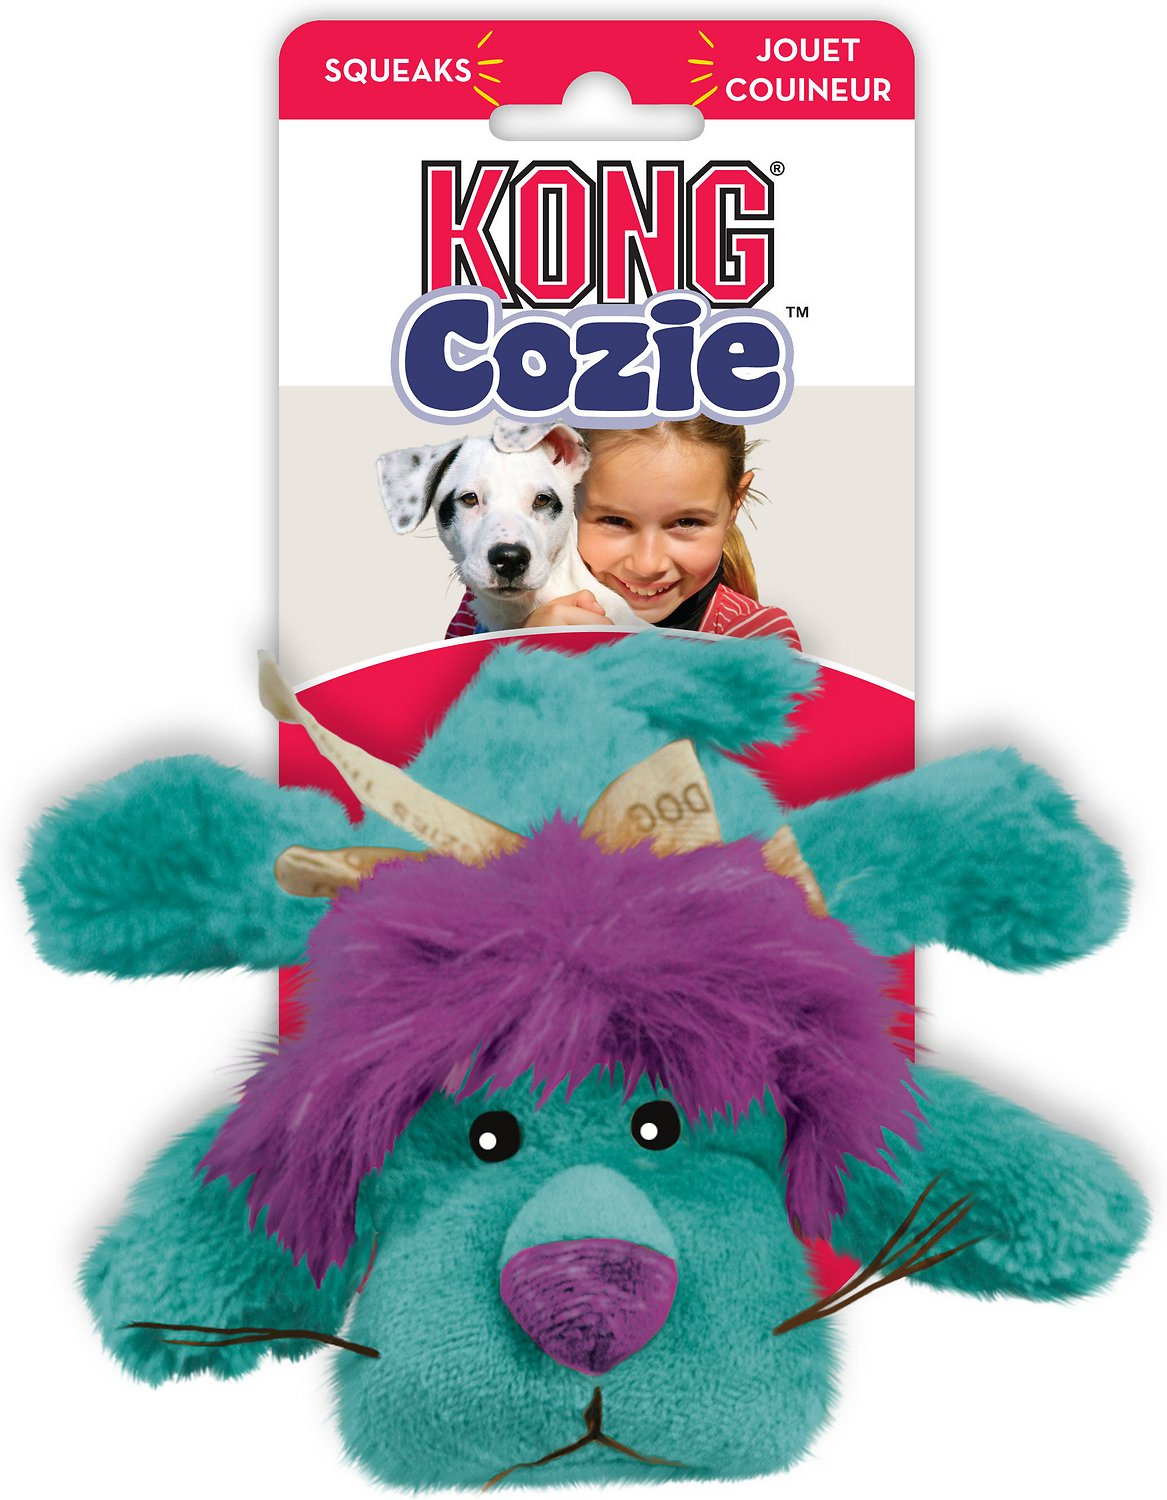 Kong Cozie King Lion Dog Toy Small